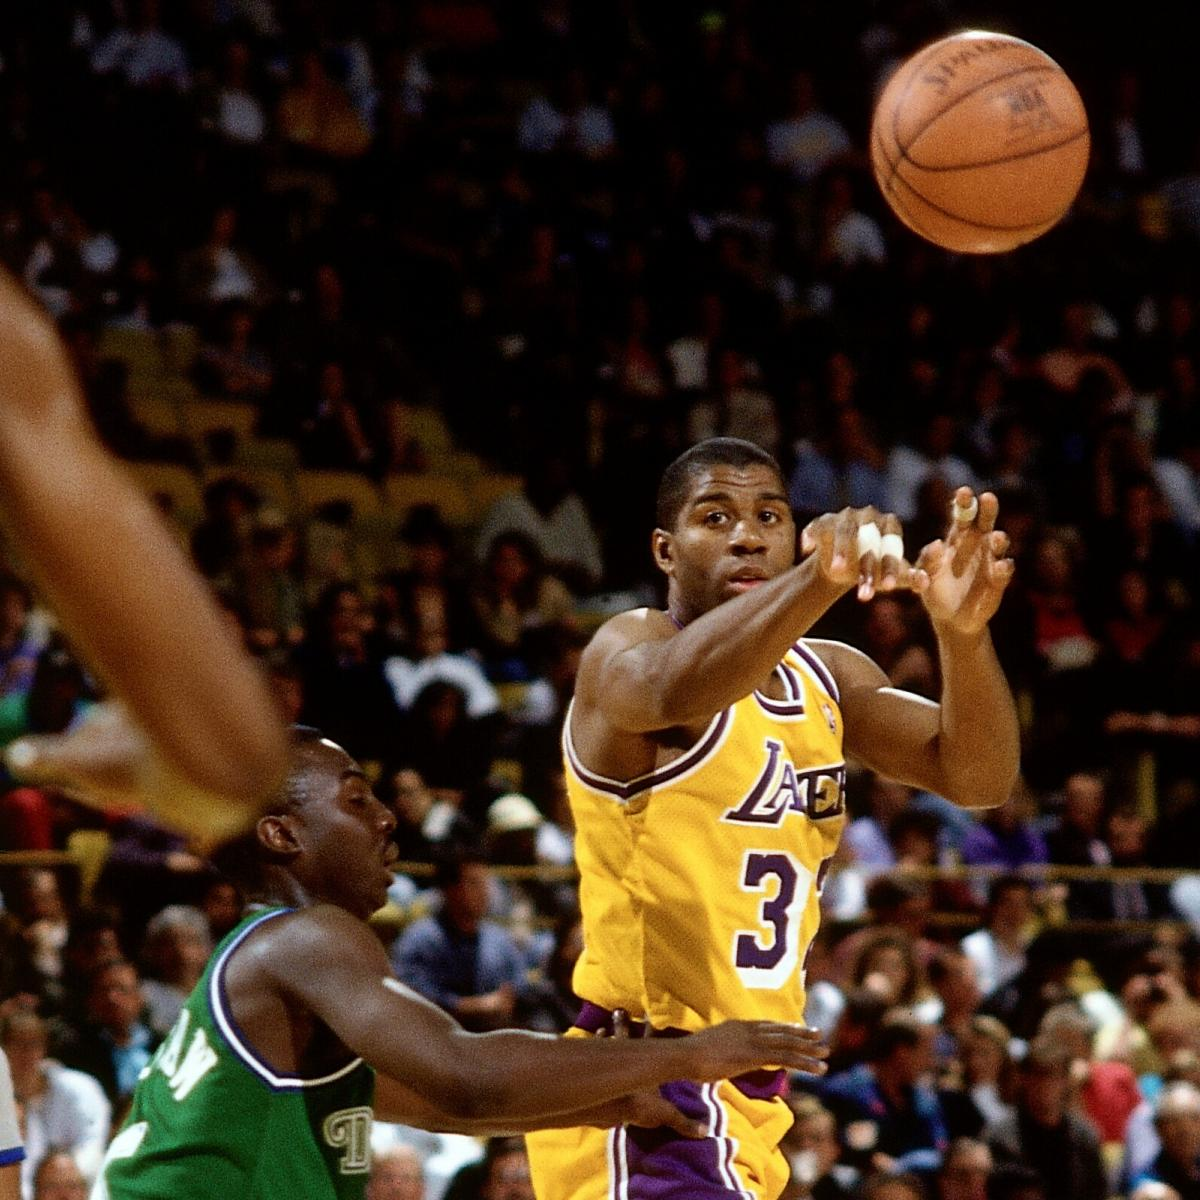 Celebrate Magic Johnson's 55th Birthday with Some of His Amazing Passes | Bleacher Report